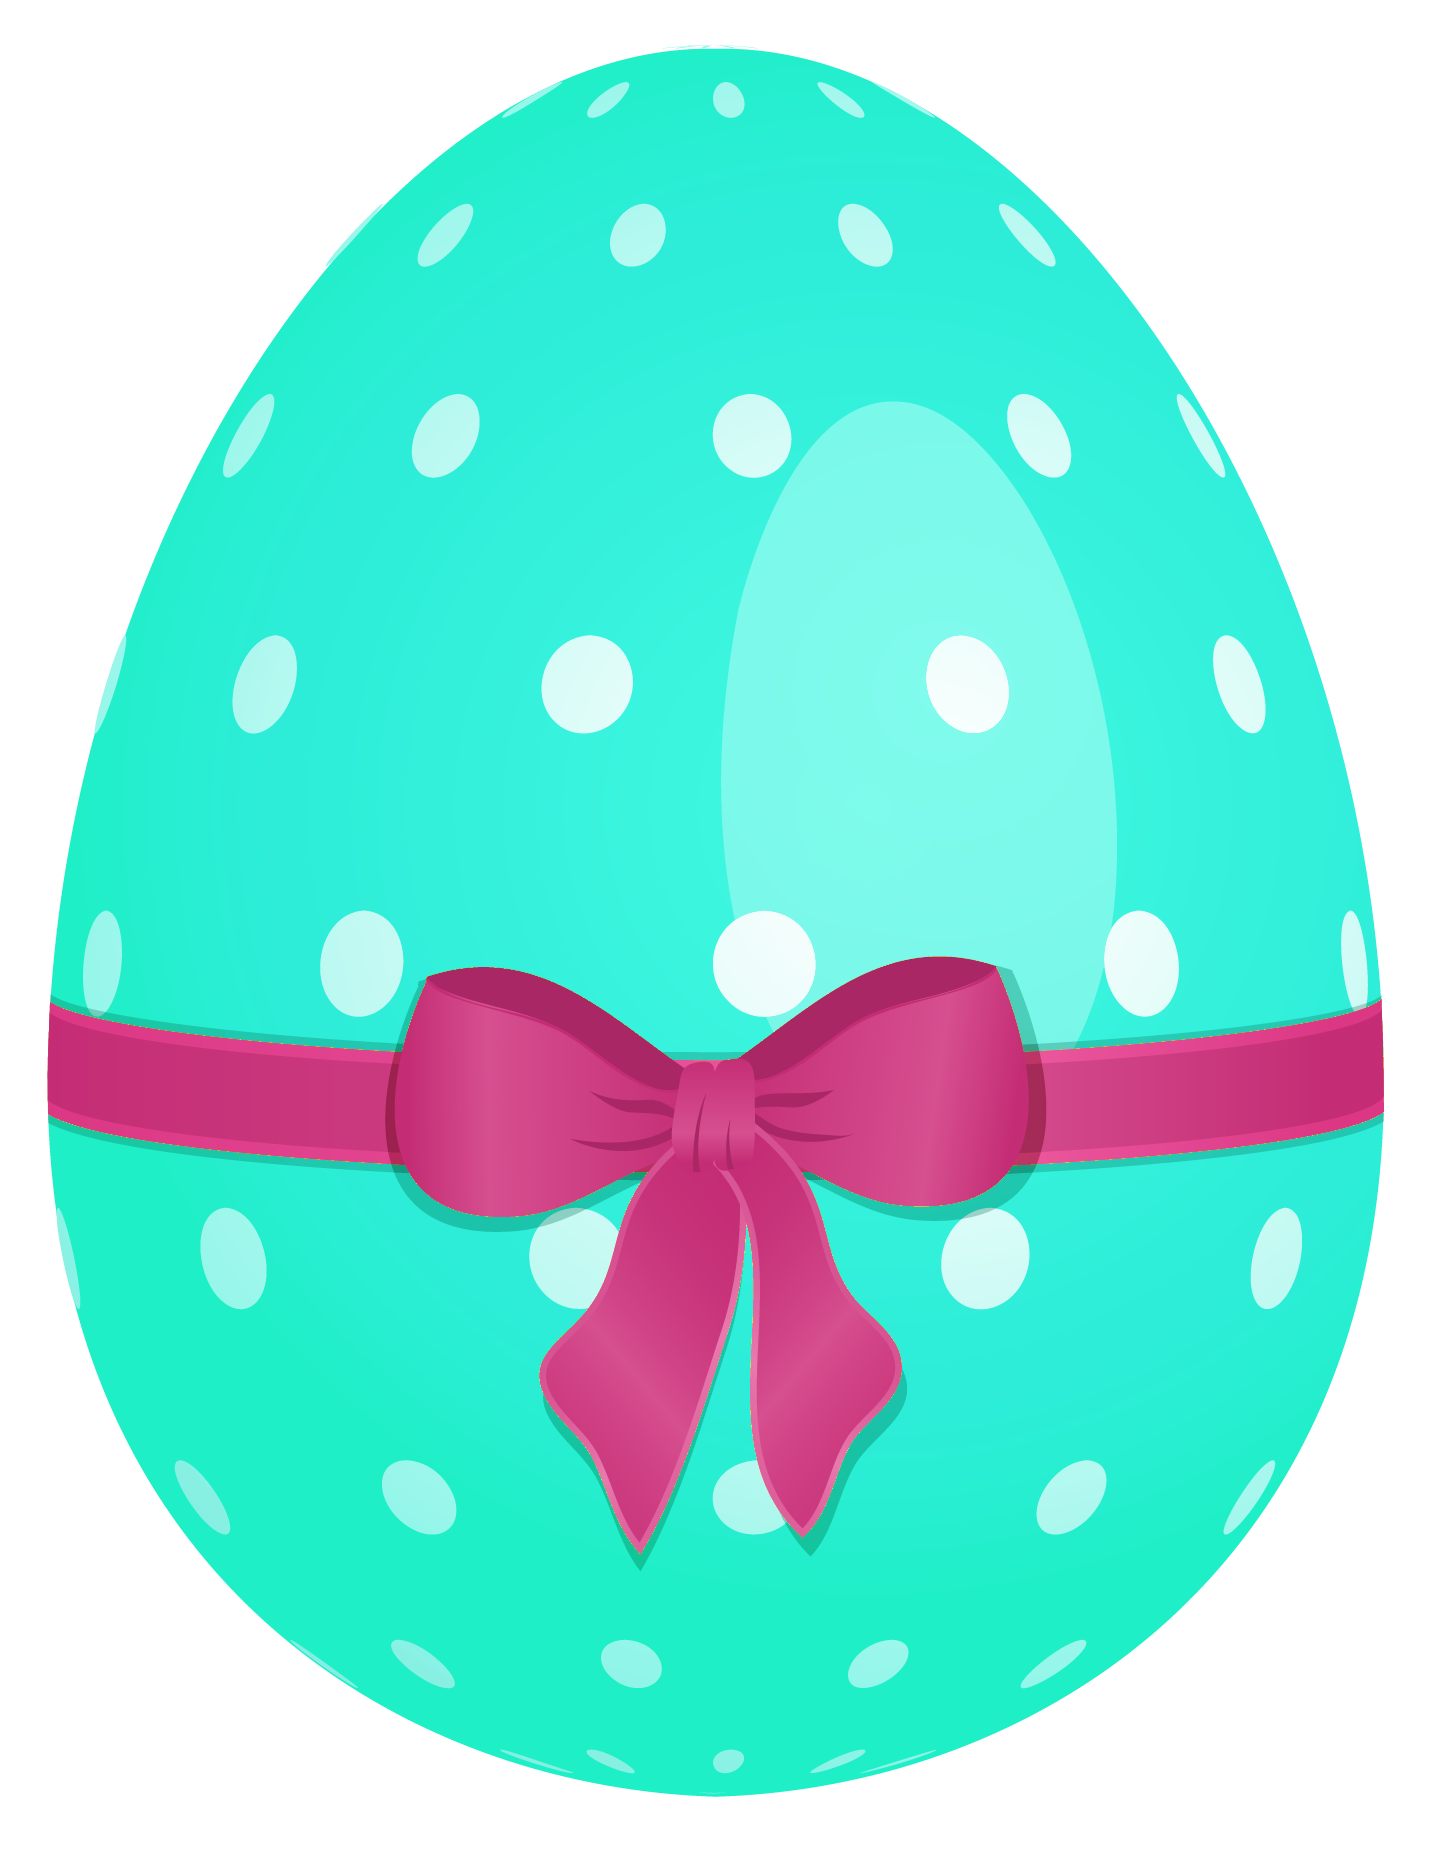 Easter egg clip art png. Sky blue with green